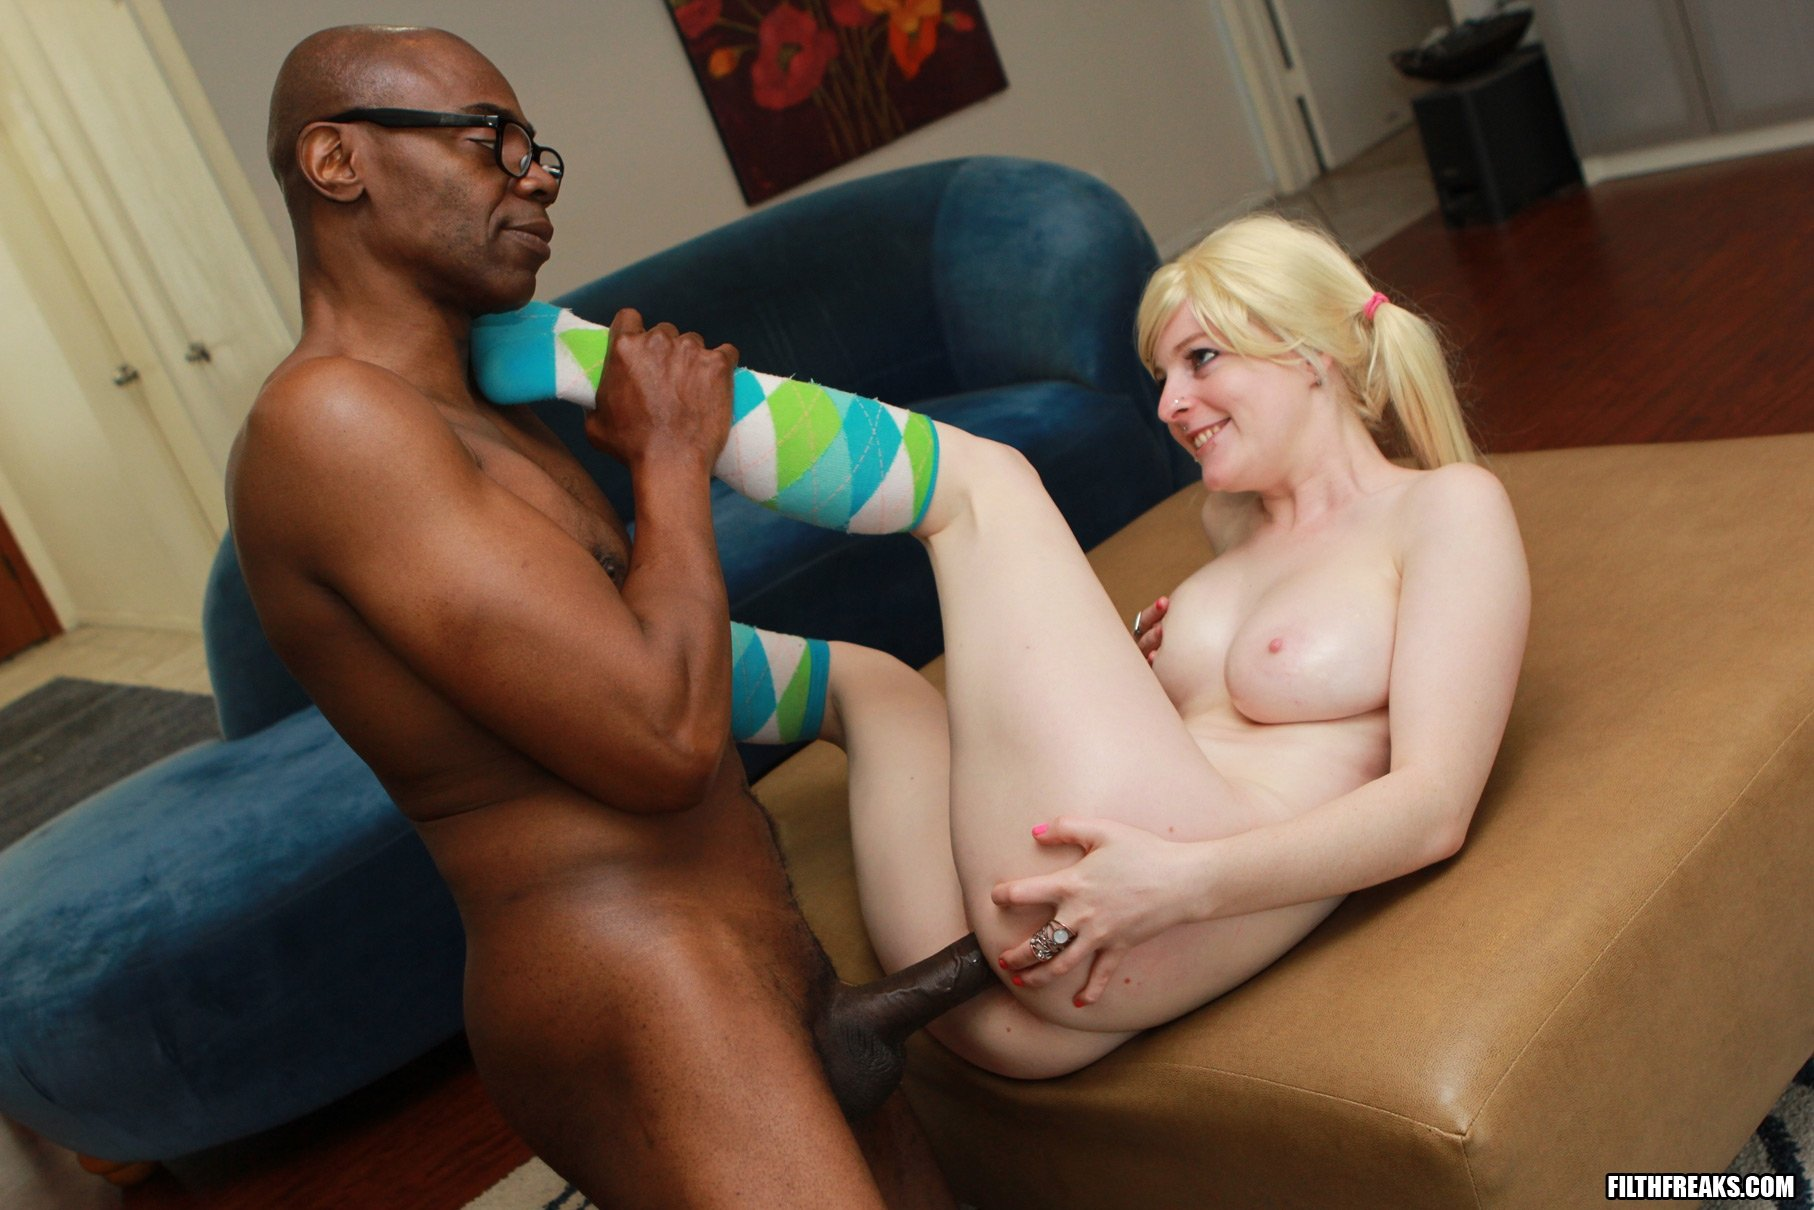 Interracial blonde with glasses